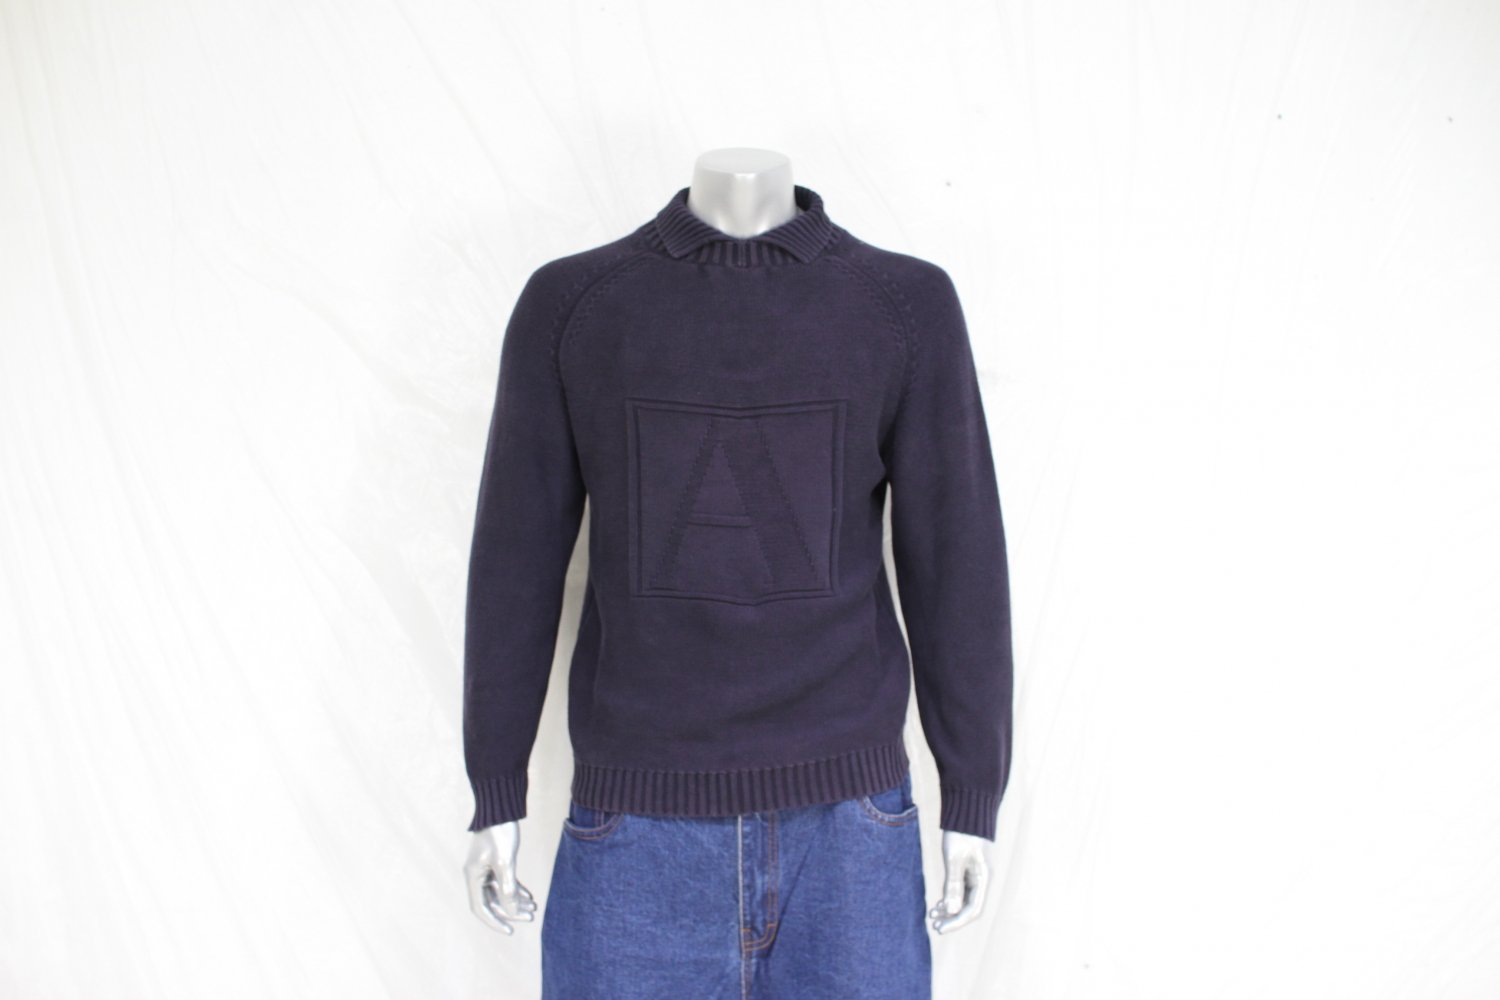 AQUASCUTUM COTTON SWEATER